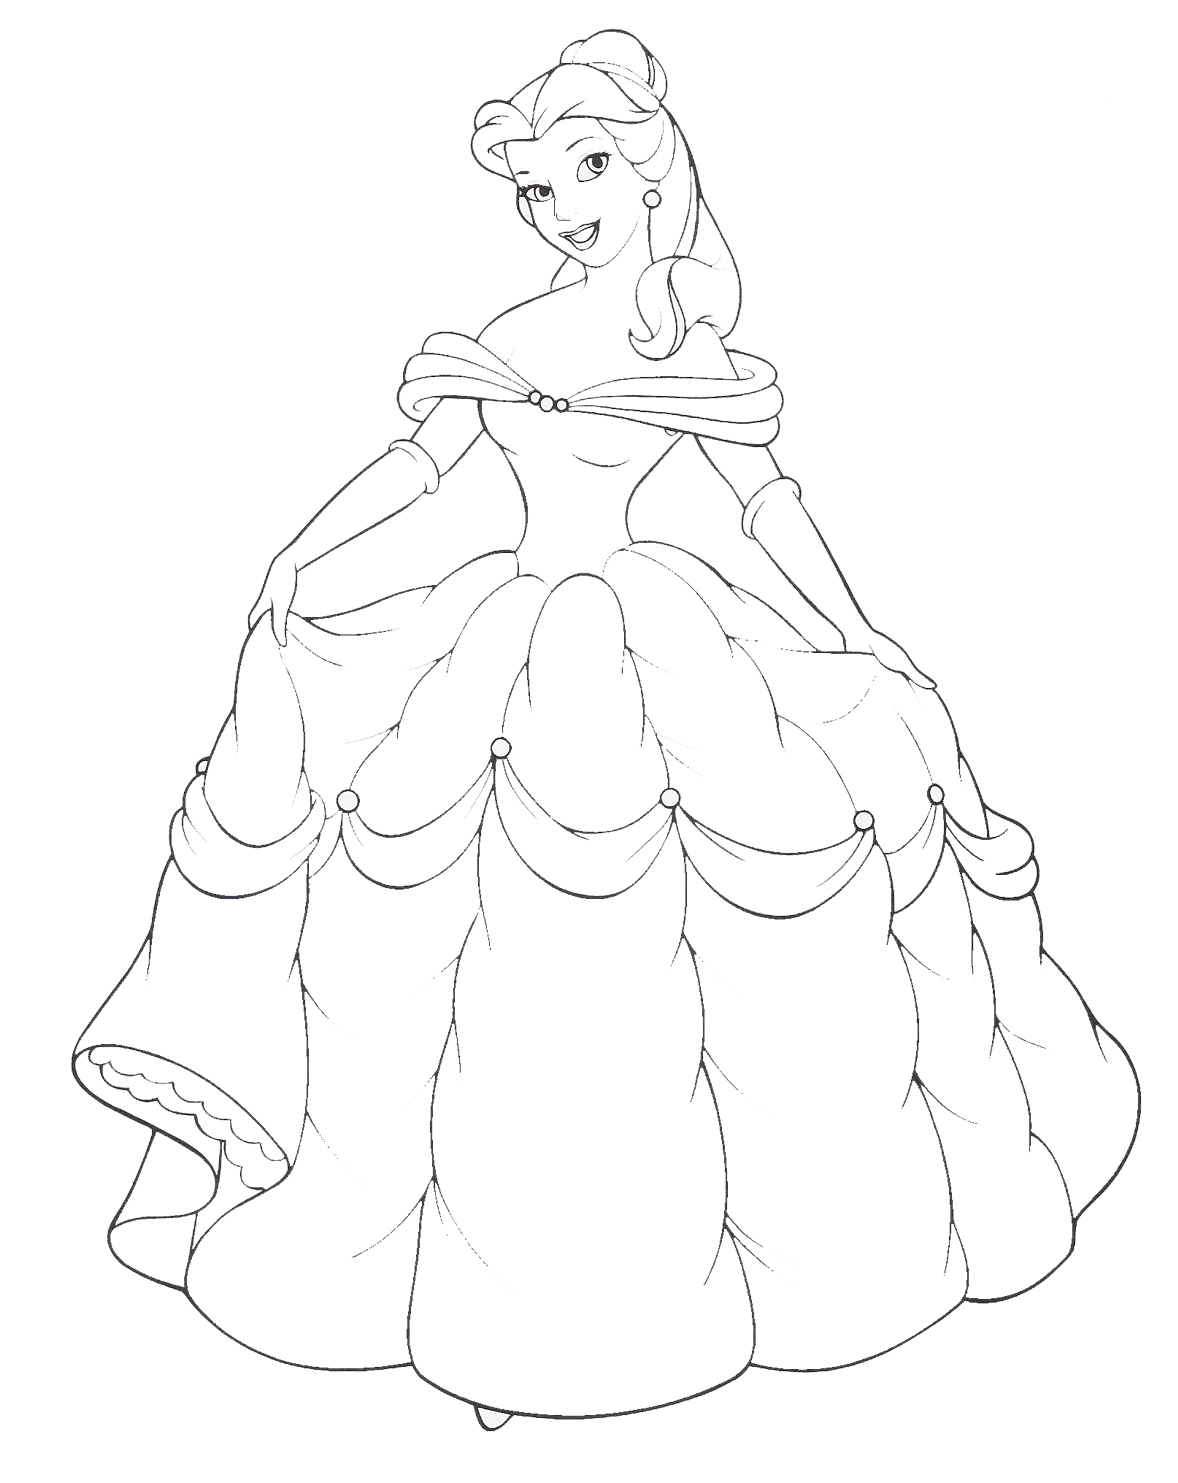 Disney Princess Belle and Her Gown Coloring Sheet